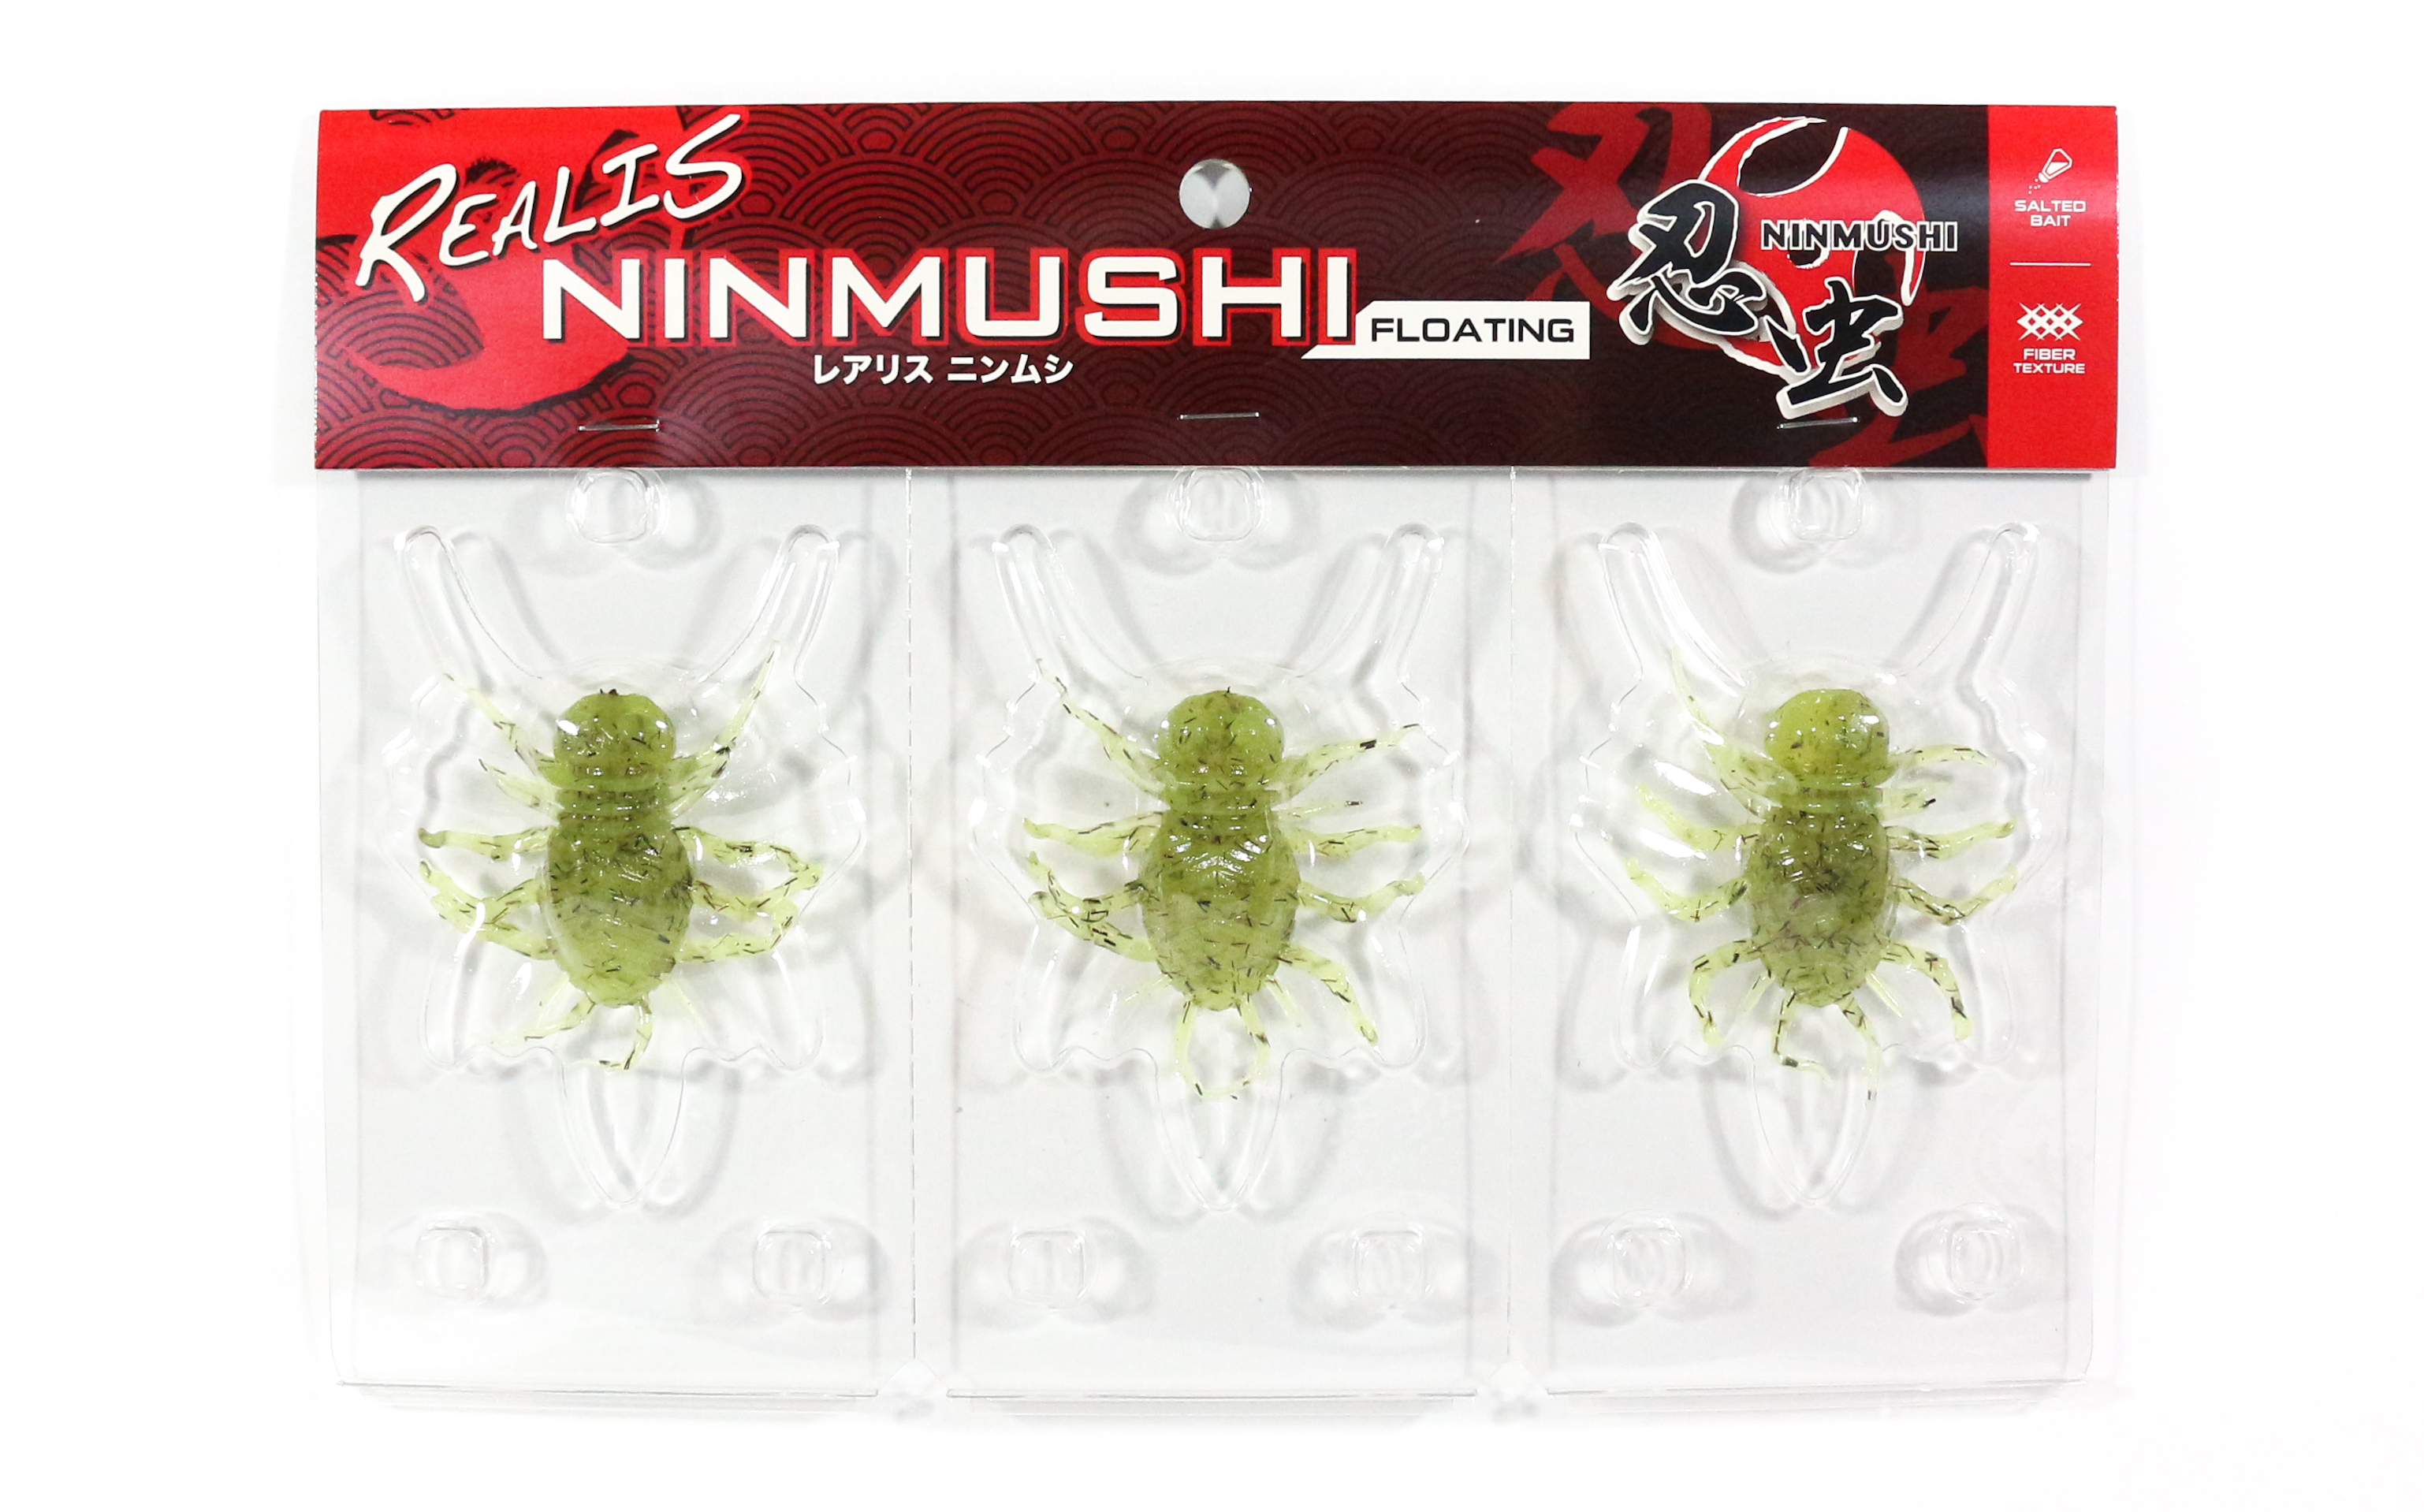 Duo Soft Lure Ninmushi Bug Floating Lure 3 piece pack F614 (6916)